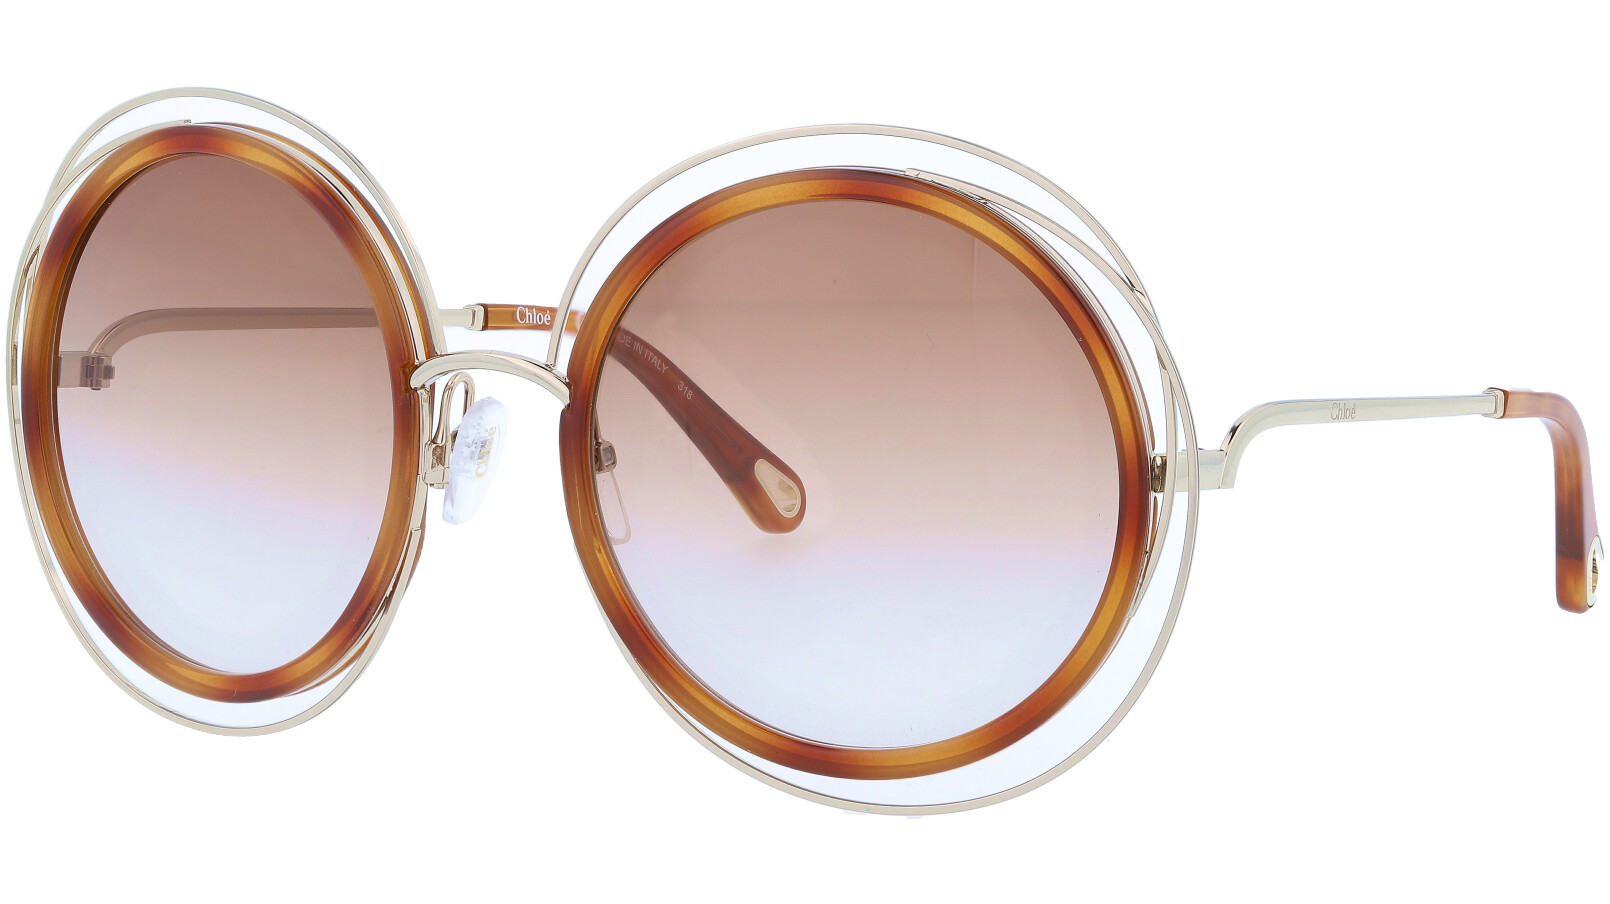 CHLOE CE120S 775 58 Gold Transparent Carlina Sunglasses